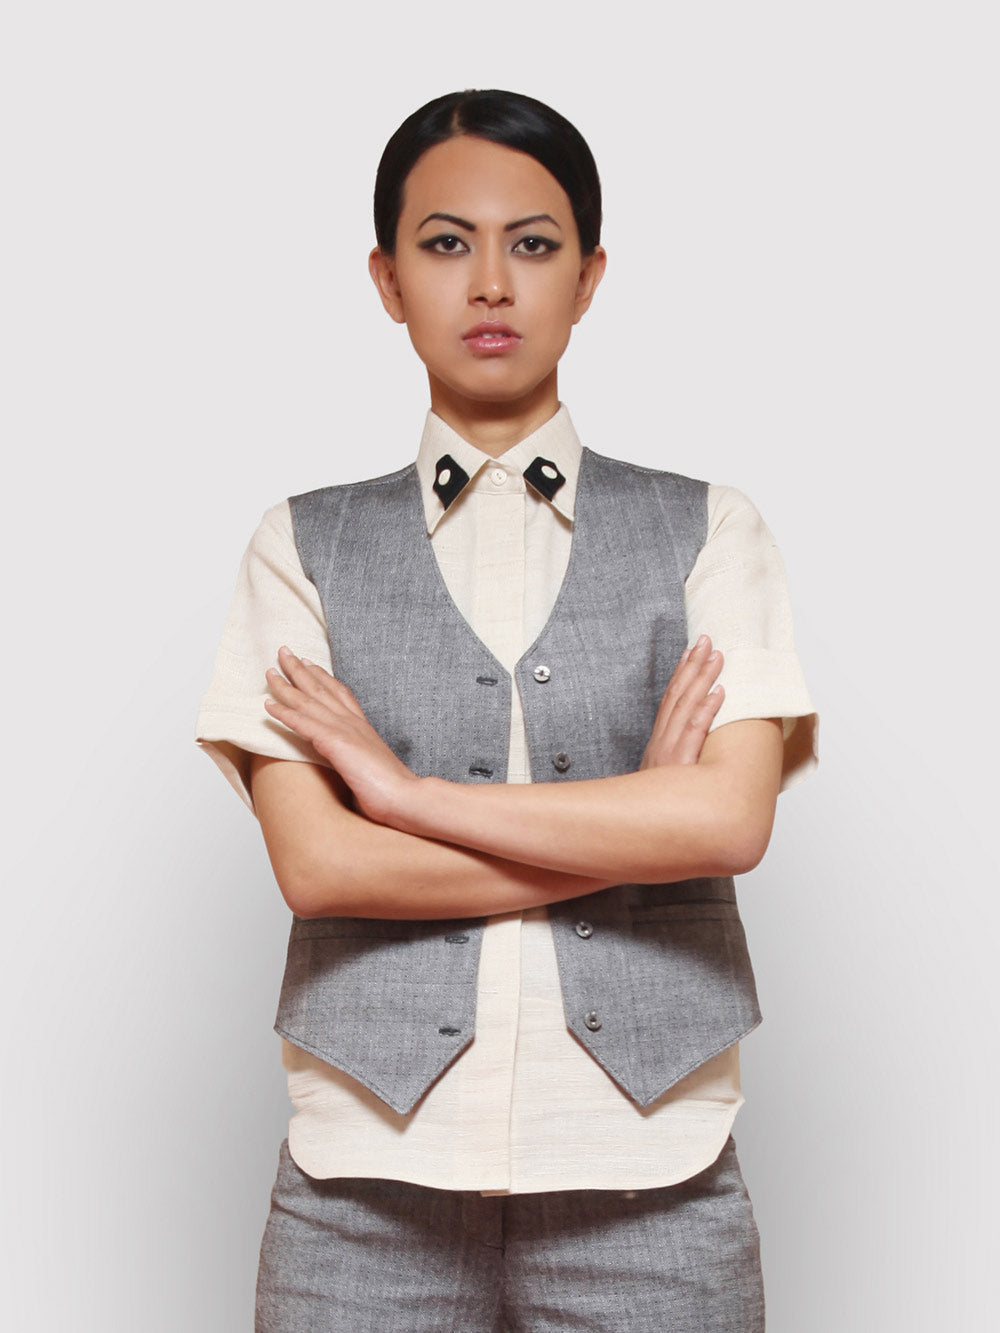 Handwoven Silk shirt with contrast tab collar designed by Khumanthem Atelier